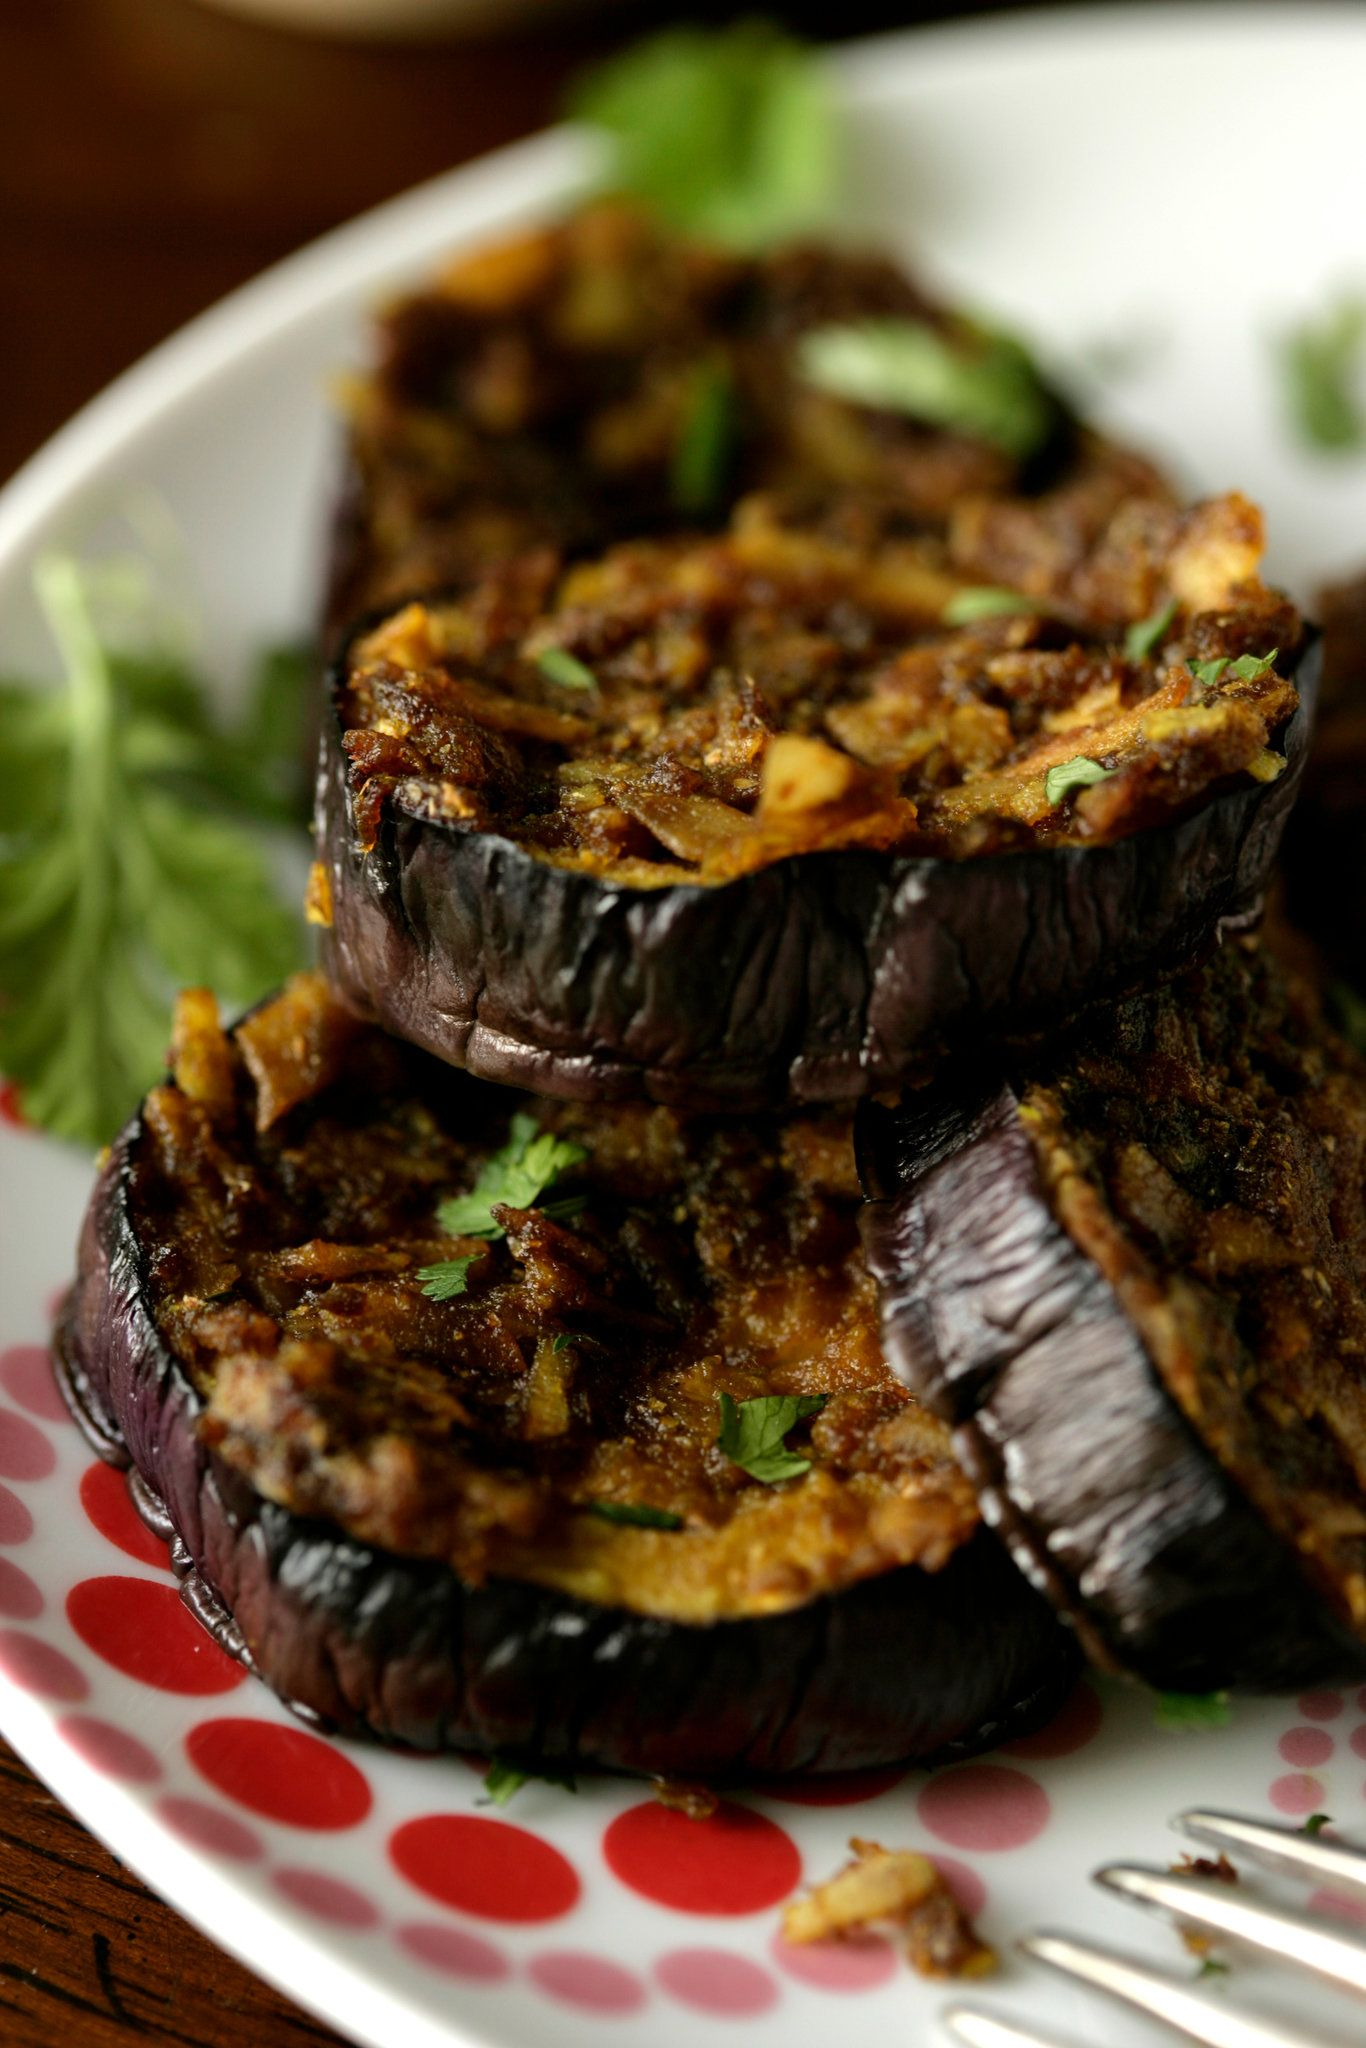 South indian eggplant curry recipe eggplants curry and mark bittman forumfinder Images